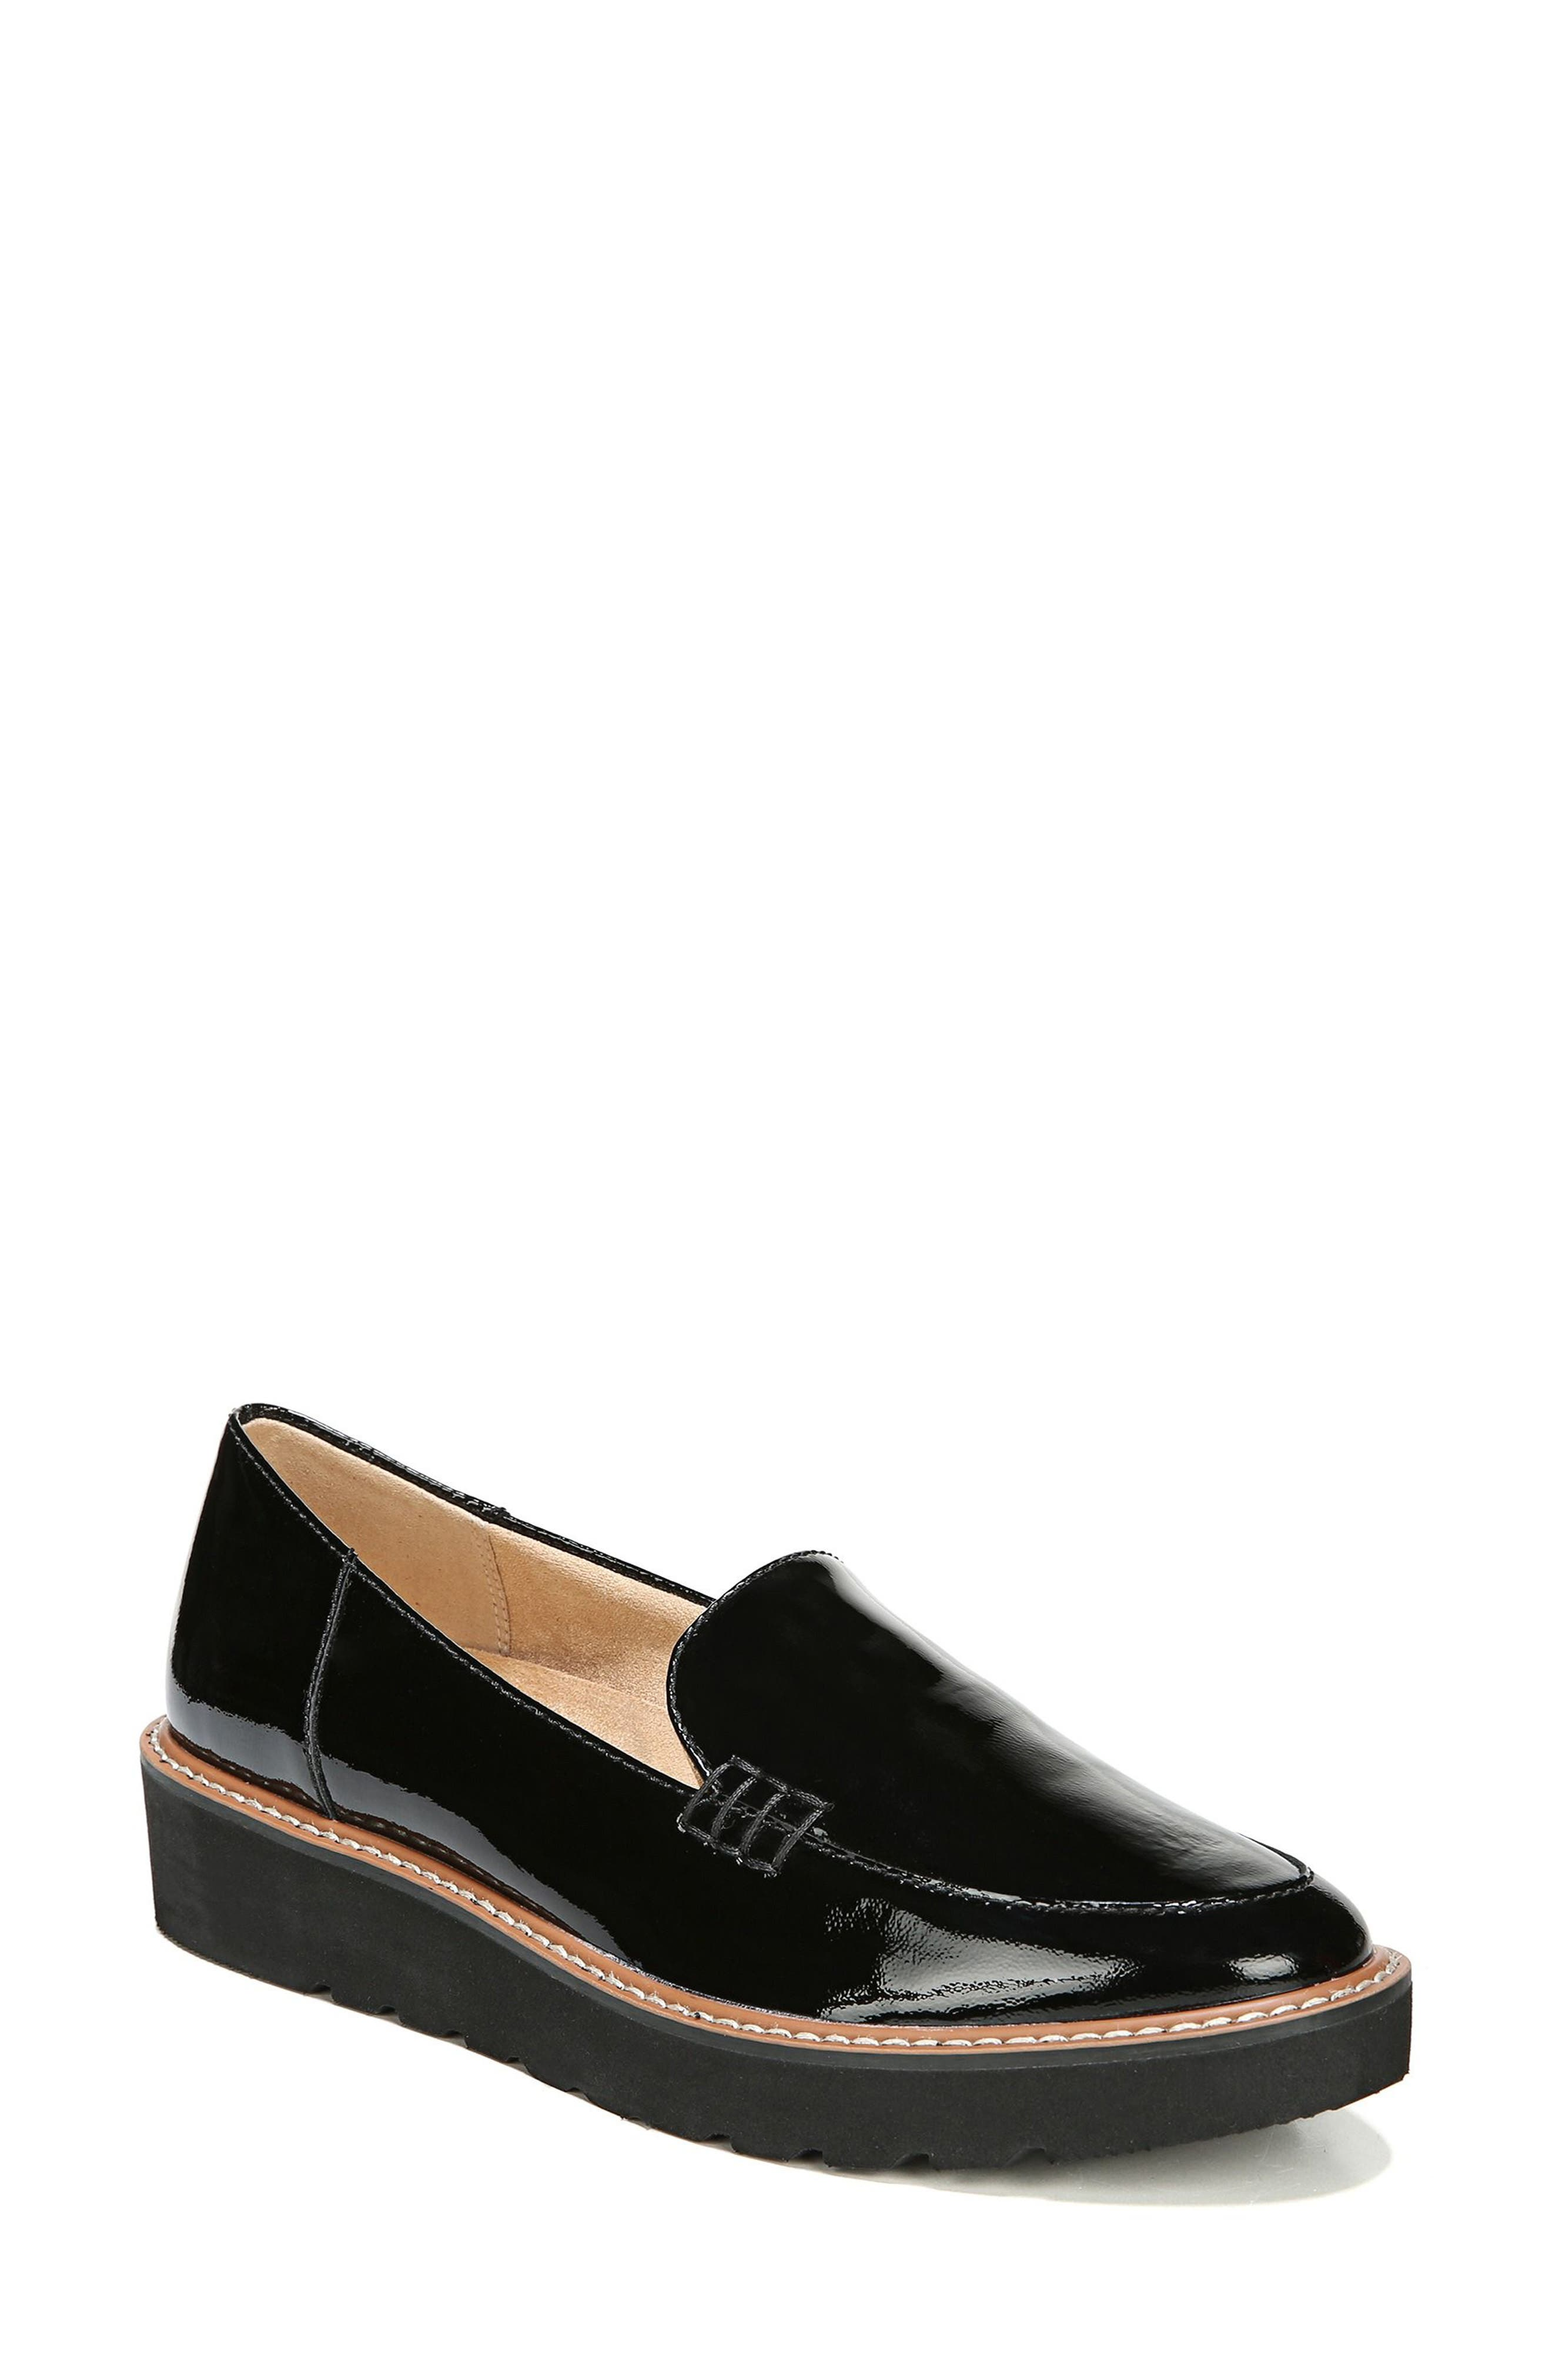 Andie Loafer,                             Main thumbnail 1, color,                             BLACK PATENT